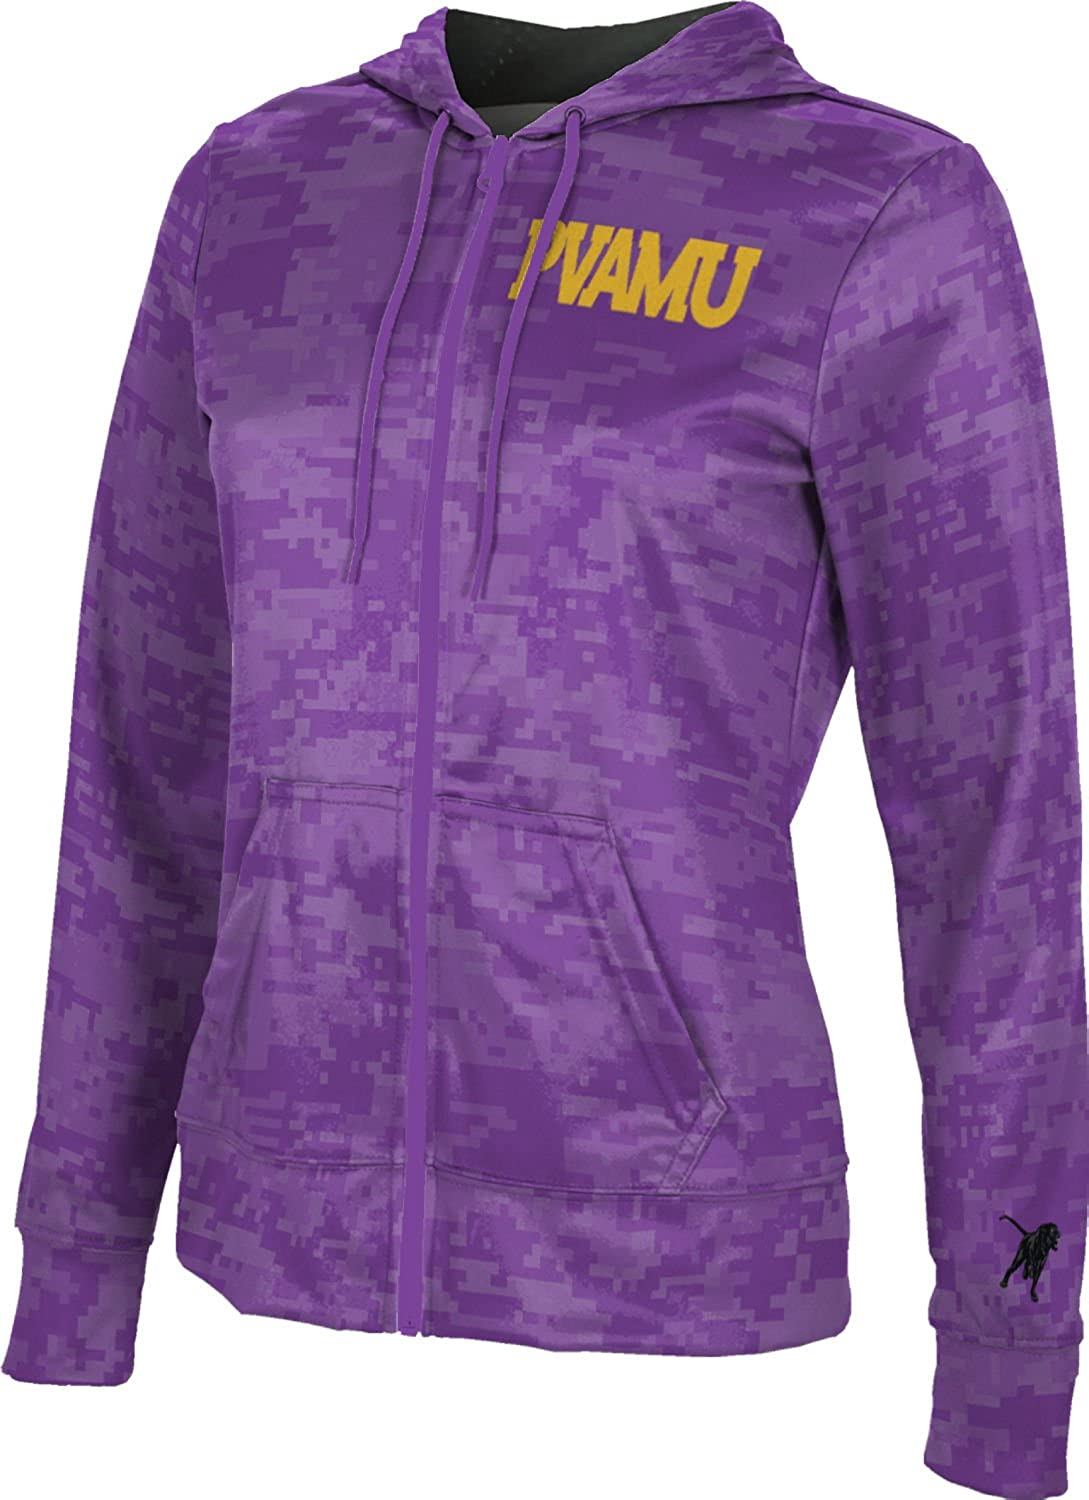 Prairie View A/&M University Girls Zipper Hoodie Prime School Spirit Sweatshirt